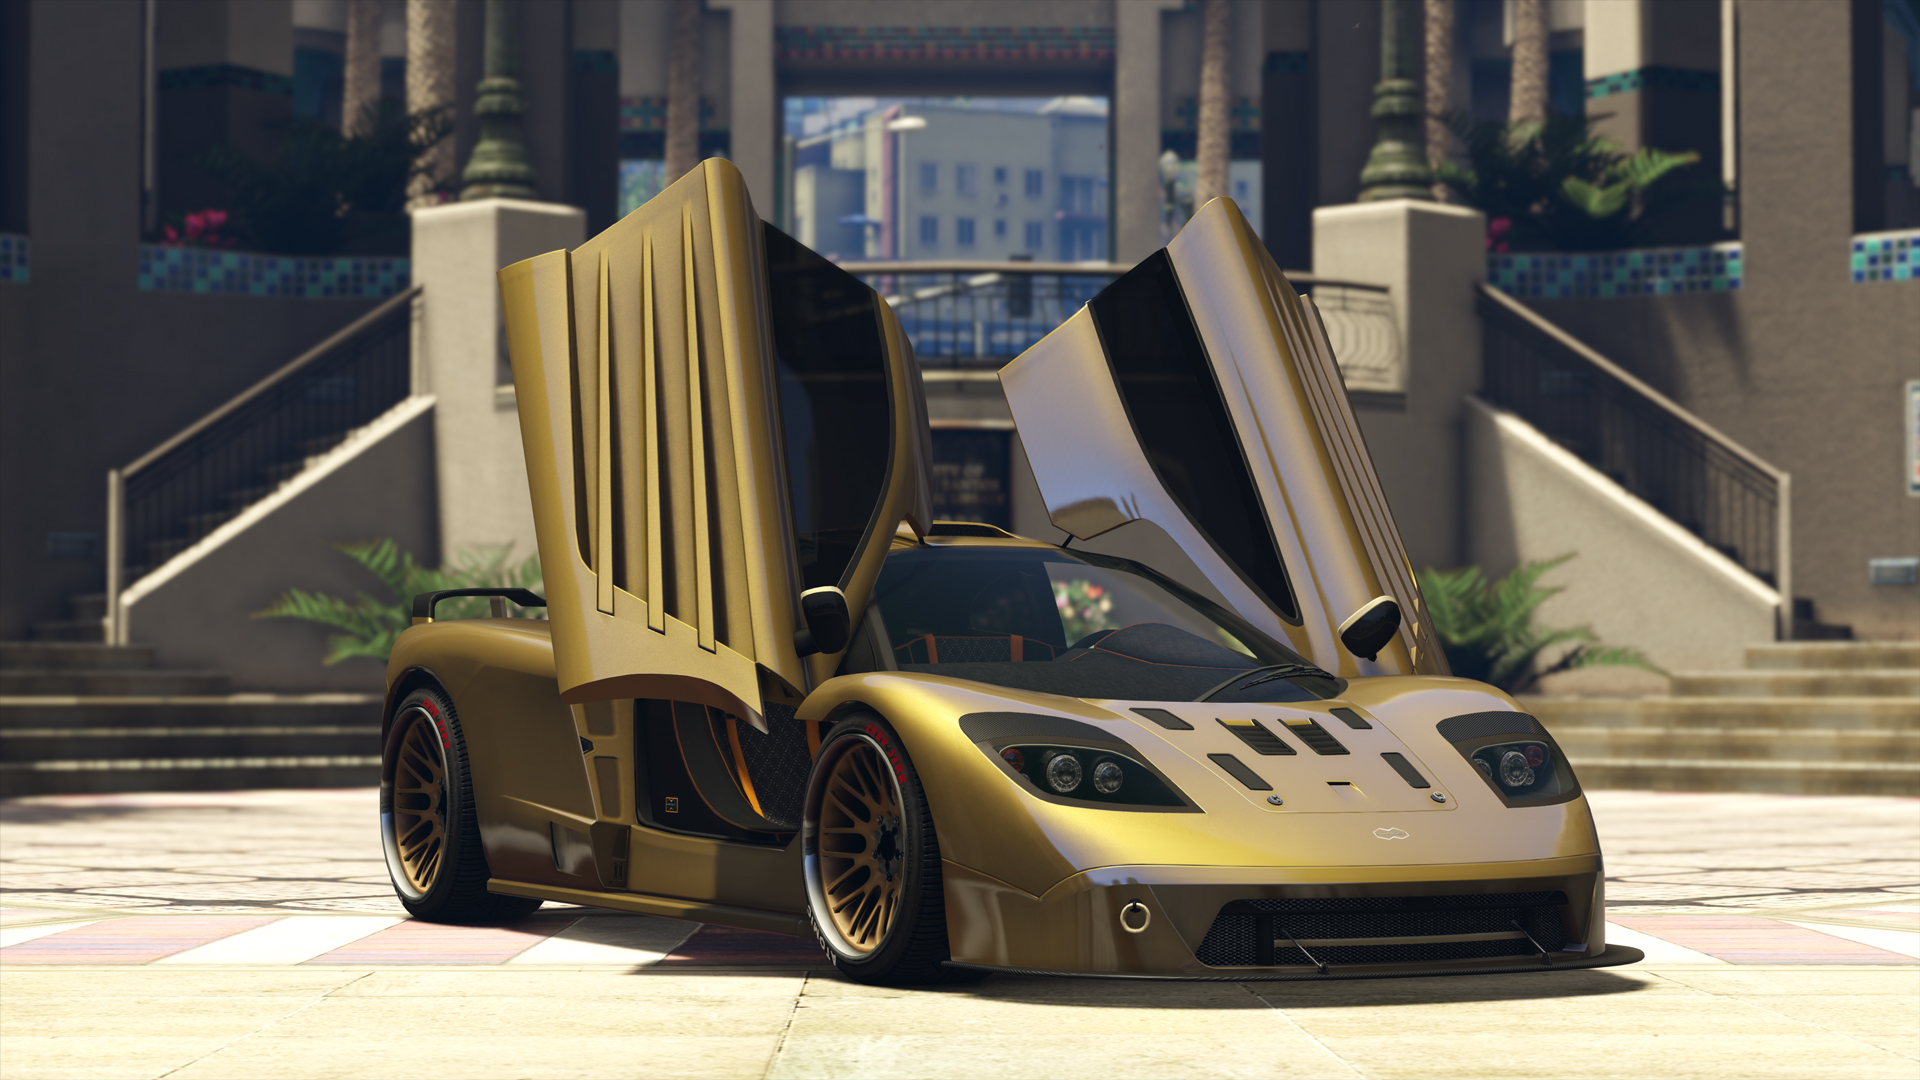 Gta 5 Cheetah Phone Number also Watch besides Grandtheftauto5cheatscodes moreover Entity Xf additionally Watch. on gta v voltic